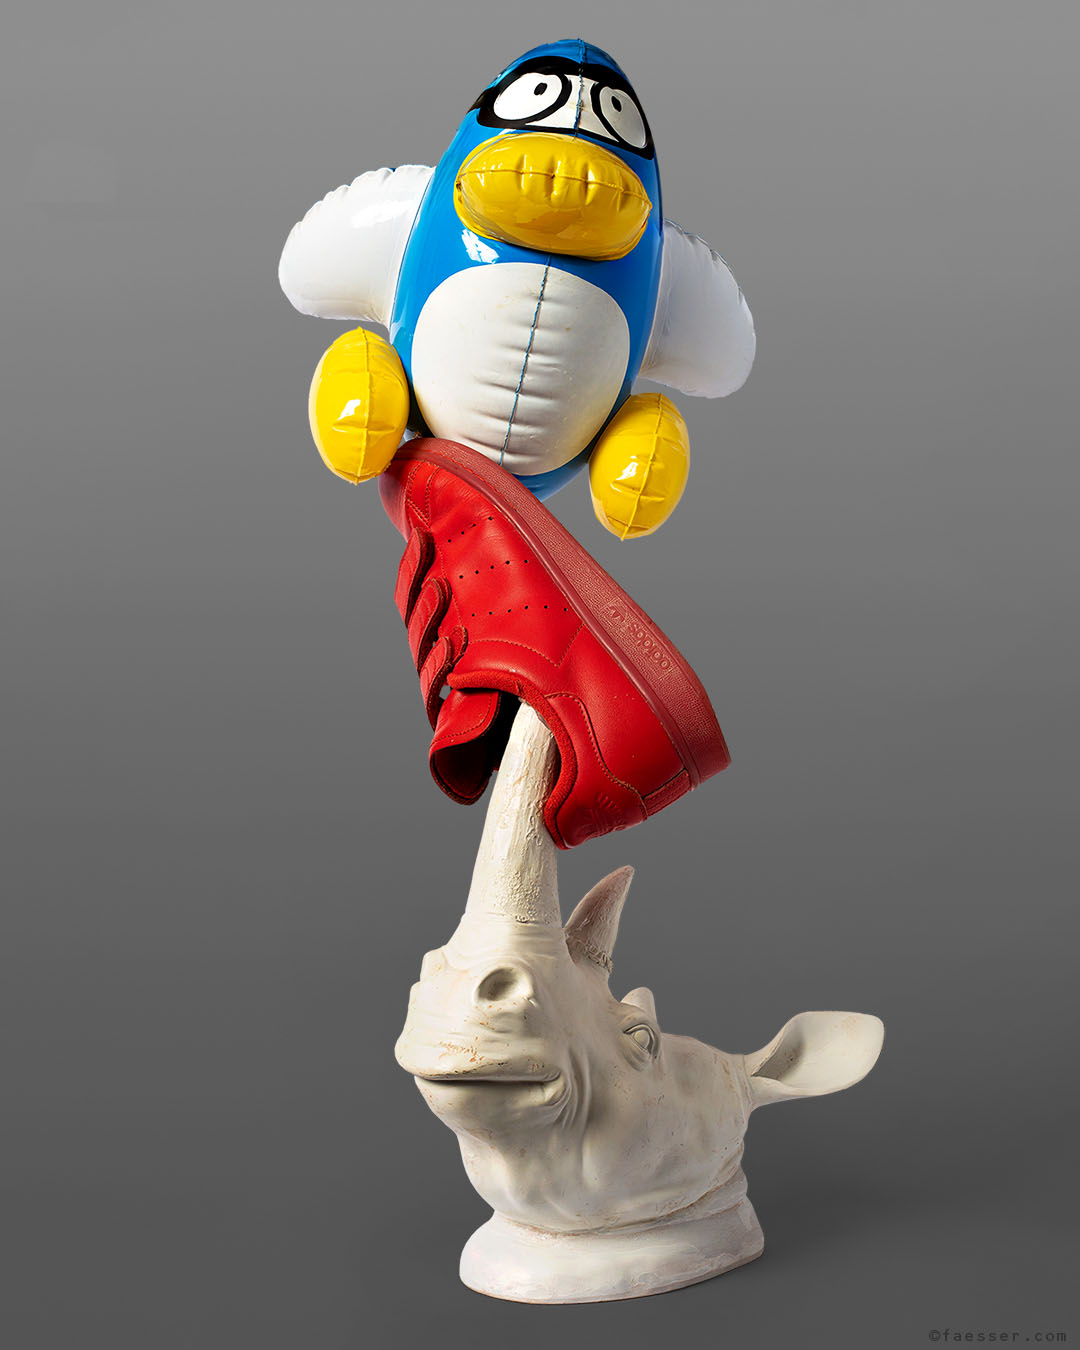 Rhinoceros head with Adidas Stan Smith sneaker and inflated comic figure; work of art as figurative sculpture; artist Roland Faesser, sculptor and painter 2019